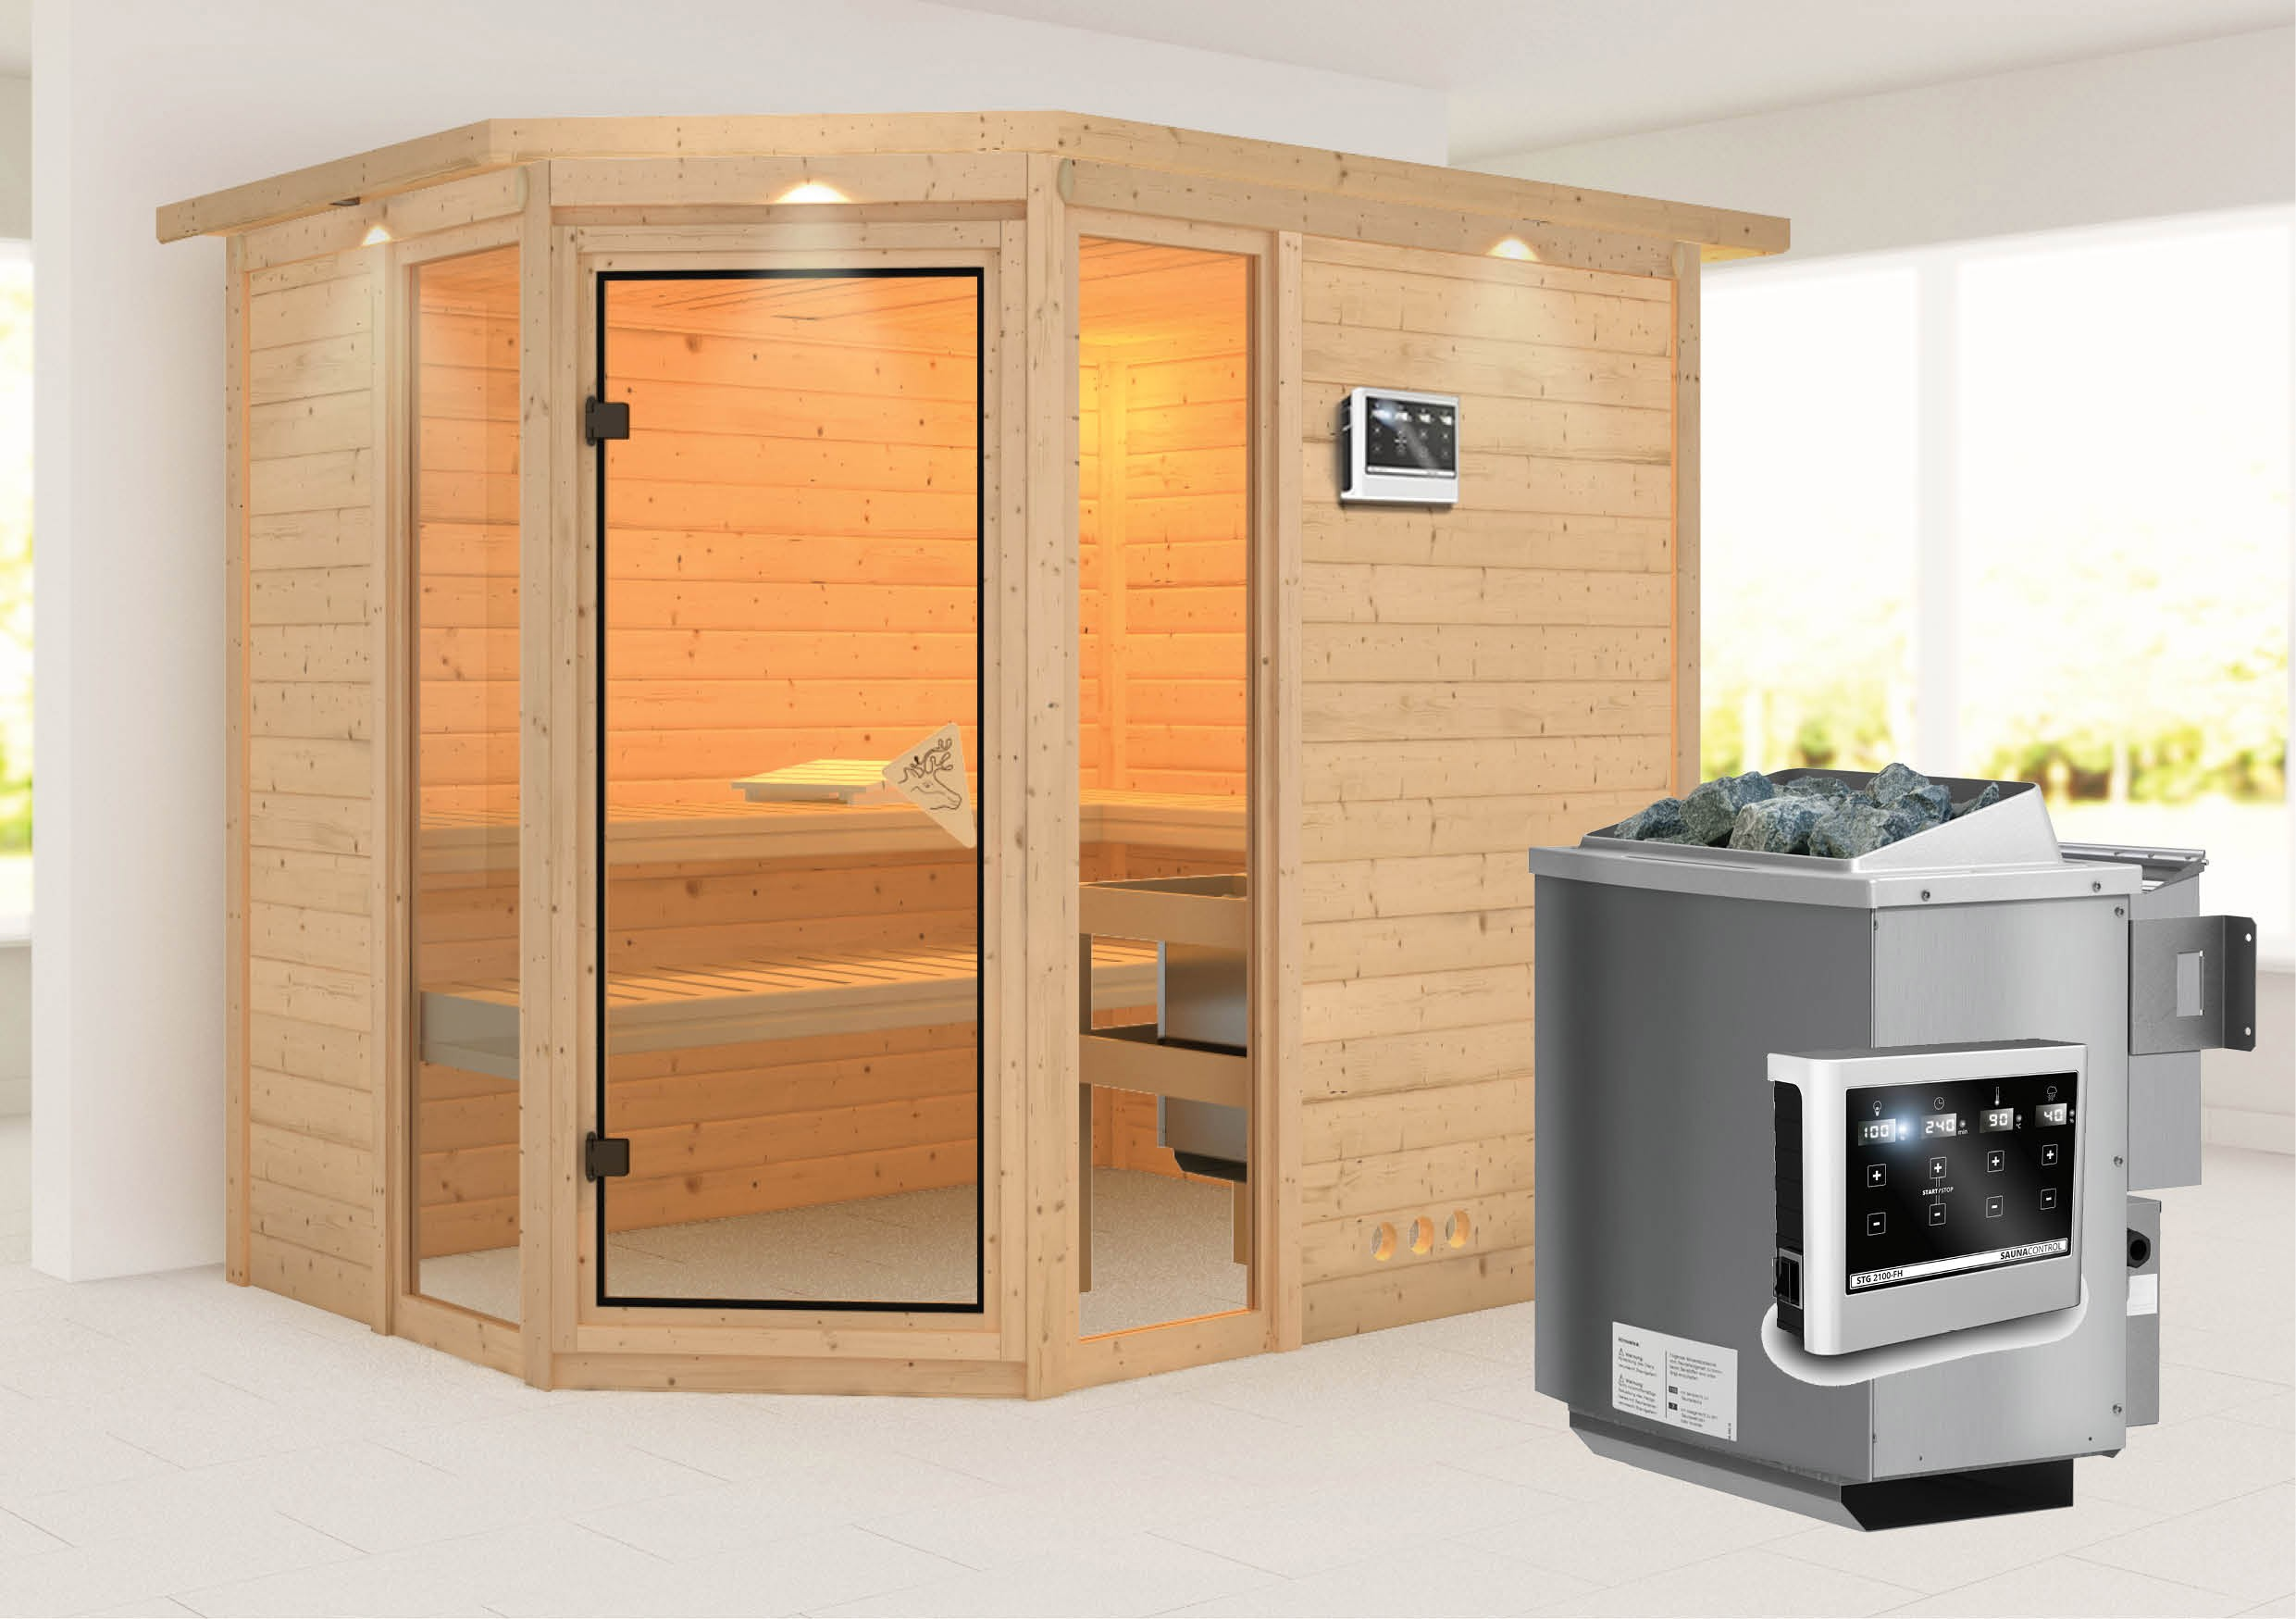 karibu sauna sinai3 40mm dachkranz bio ofen 9kw extern classic t r bei. Black Bedroom Furniture Sets. Home Design Ideas